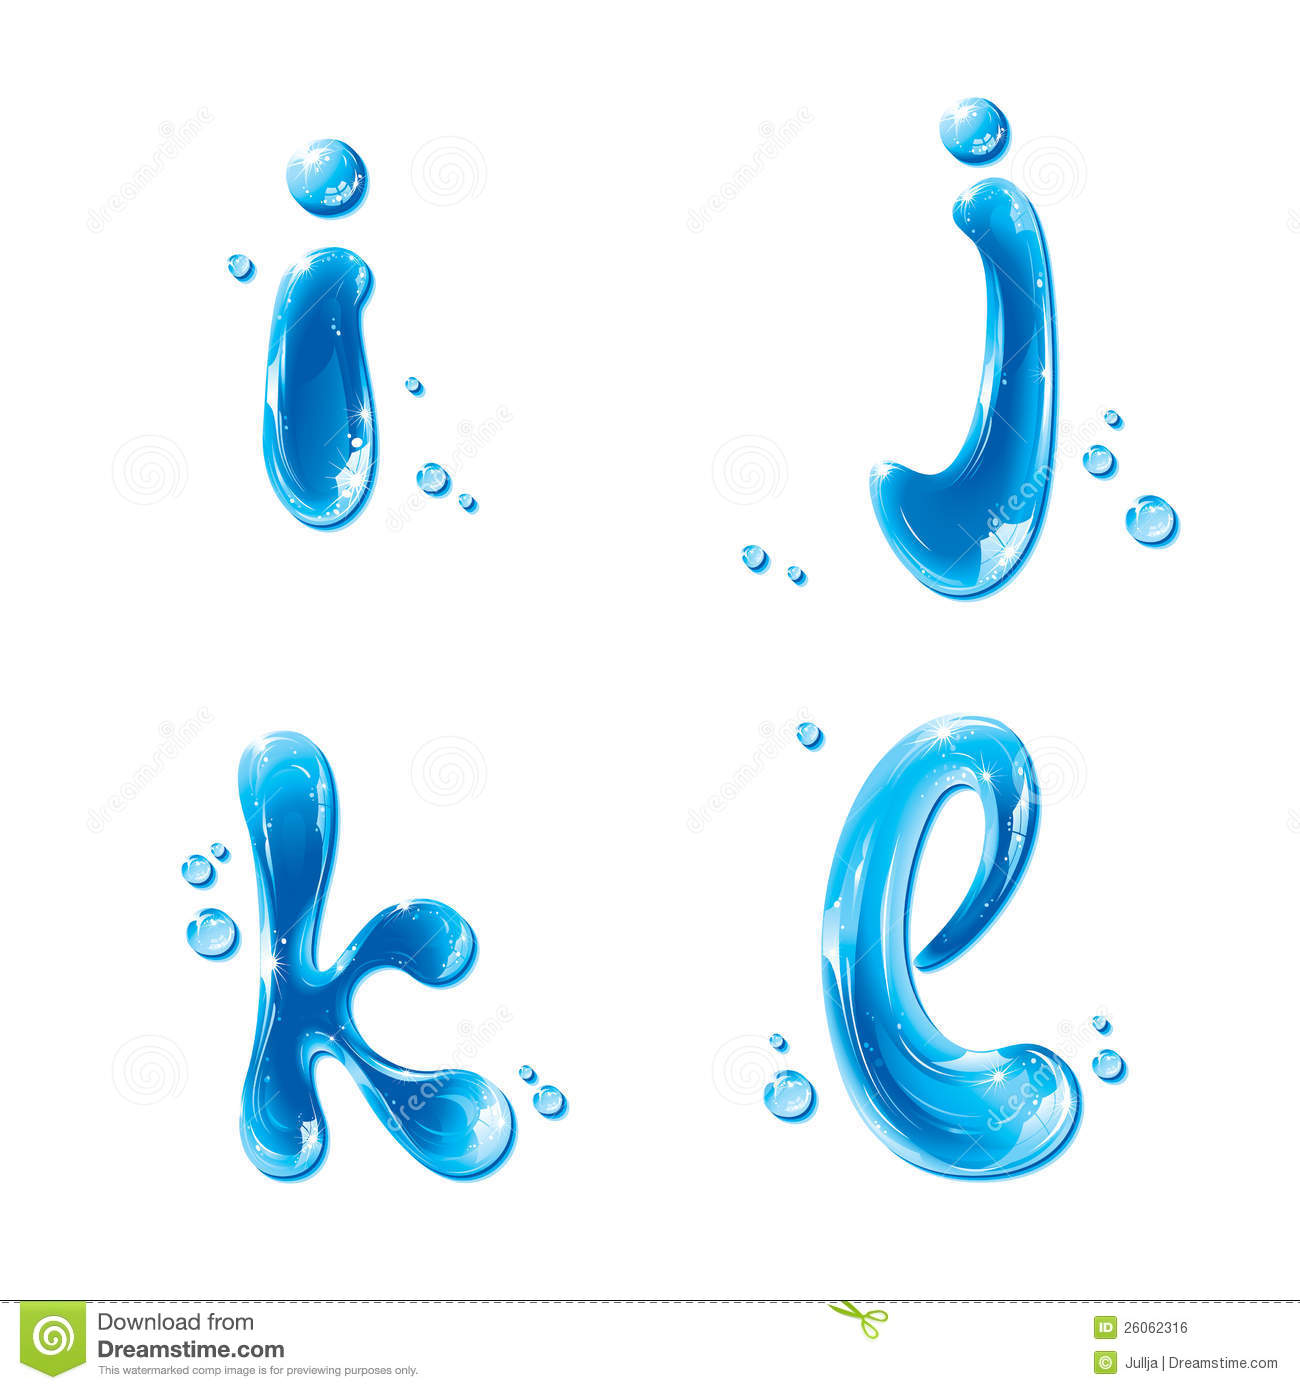 How to draw bubble letter E